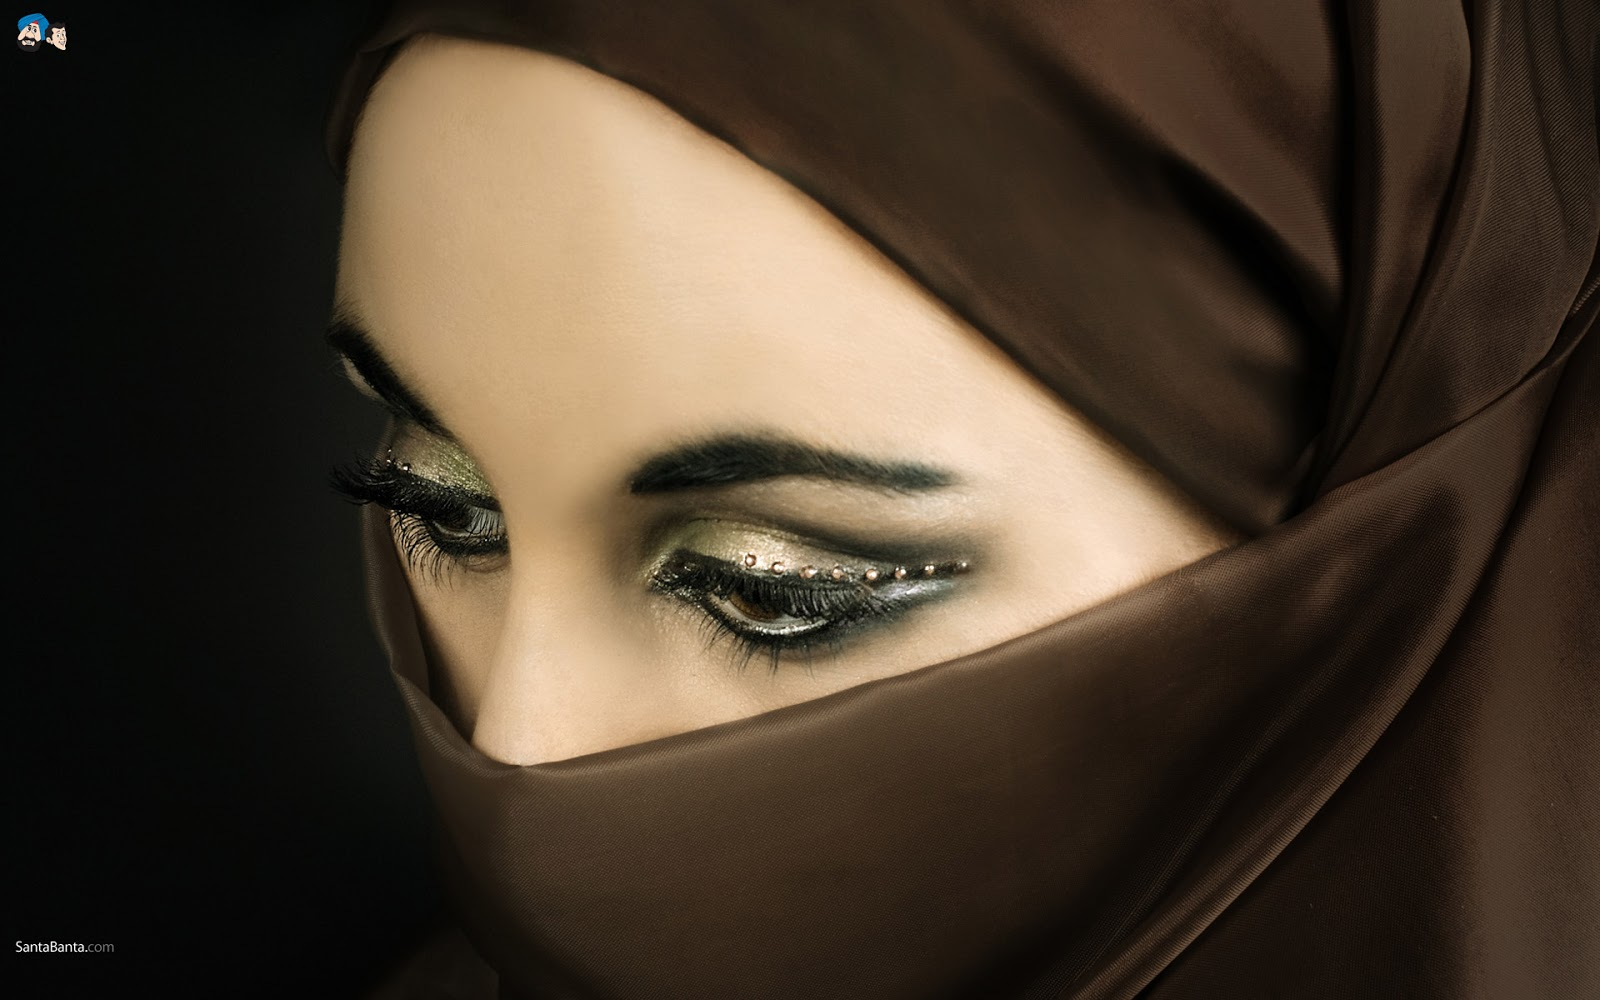 wanita muslimah bercadar arab woman in hijab hd wallpaper 1